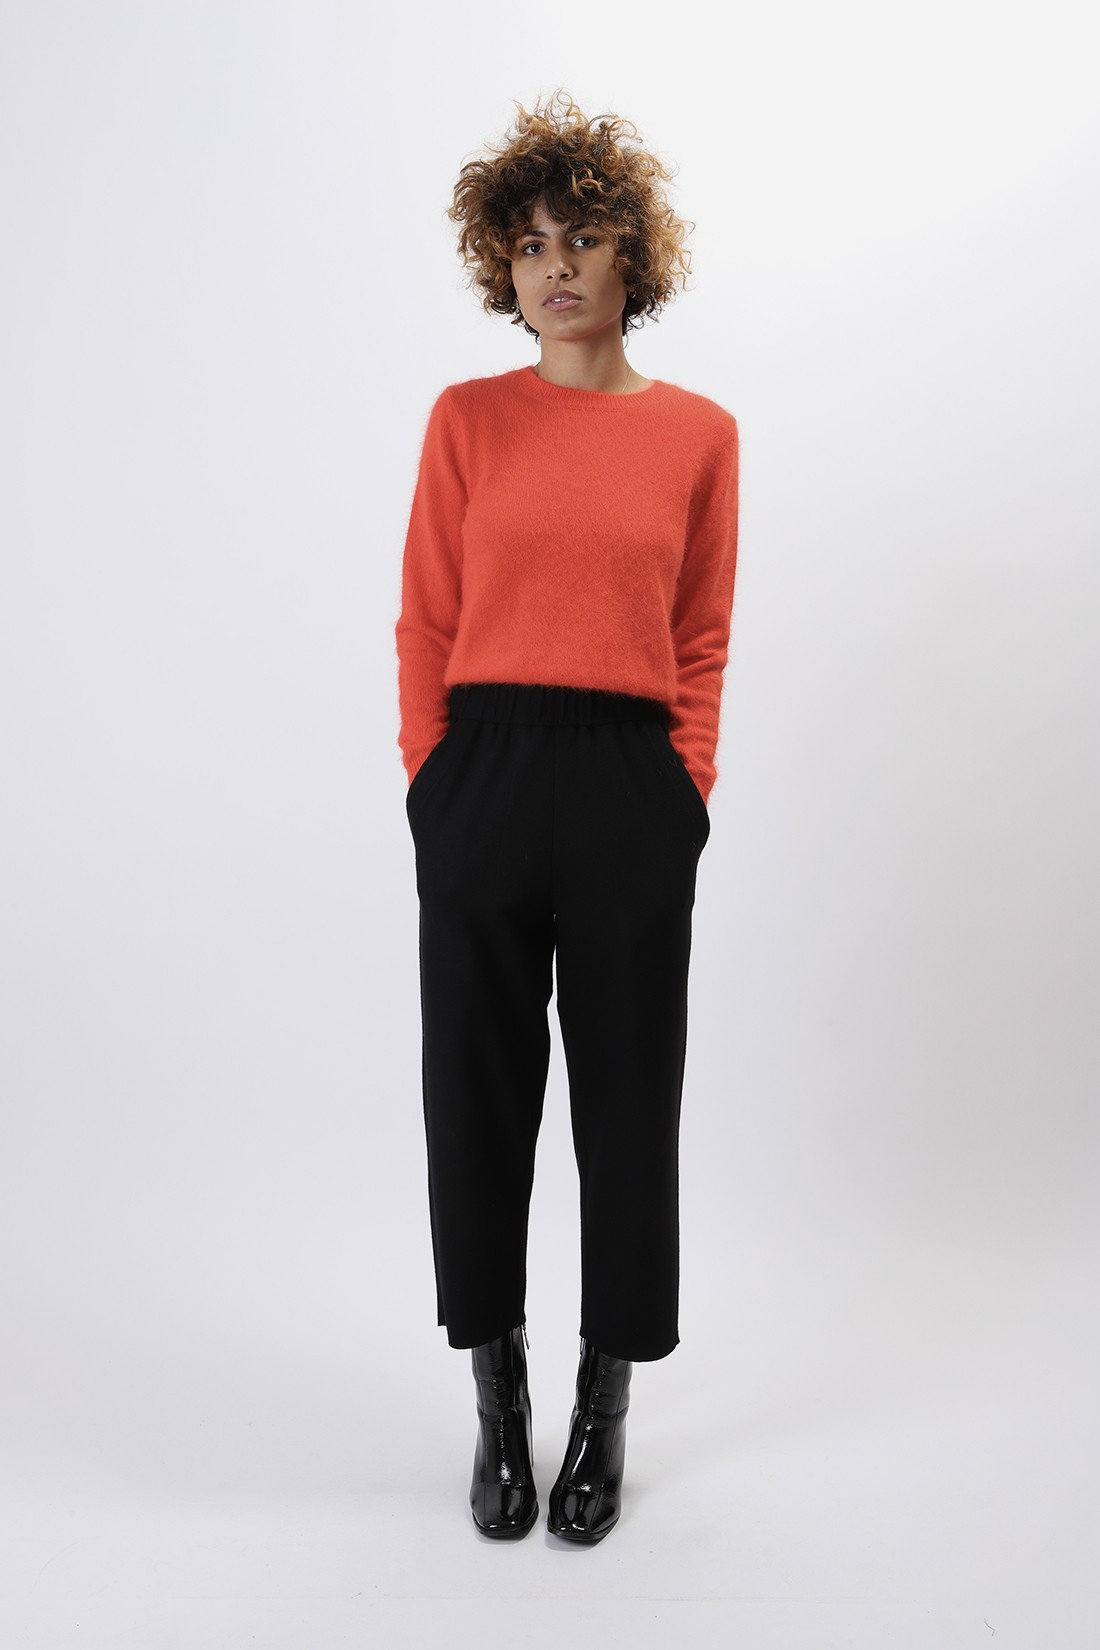 BARENA FOR WOMAN / Trousers joie Nero